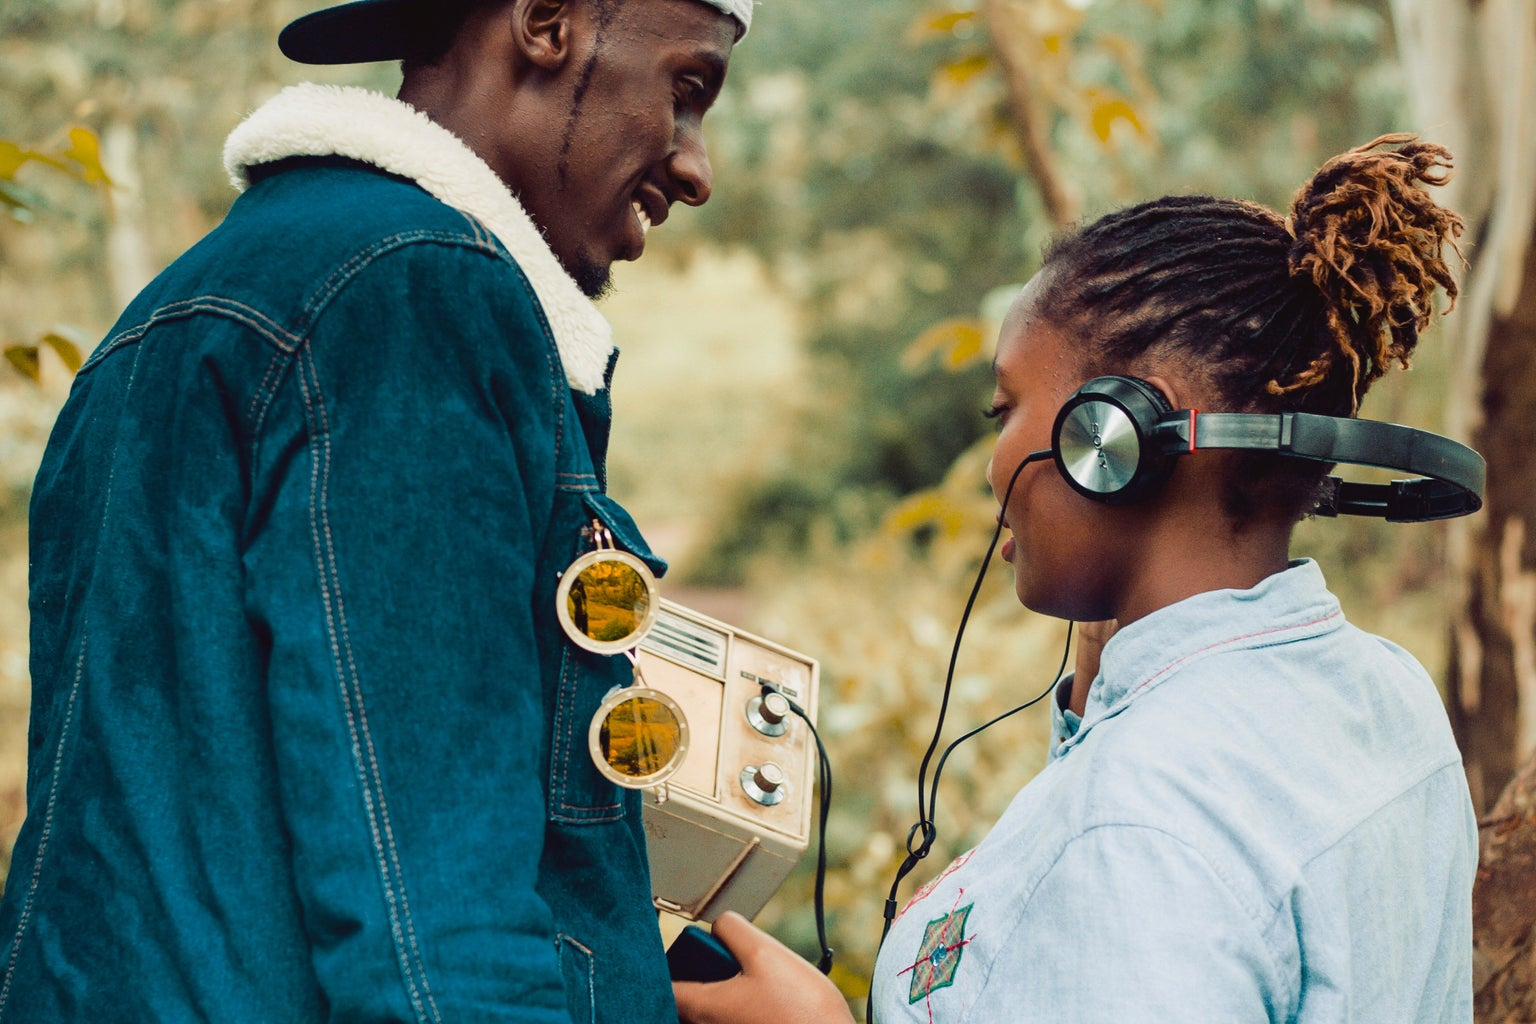 Two people listening to music